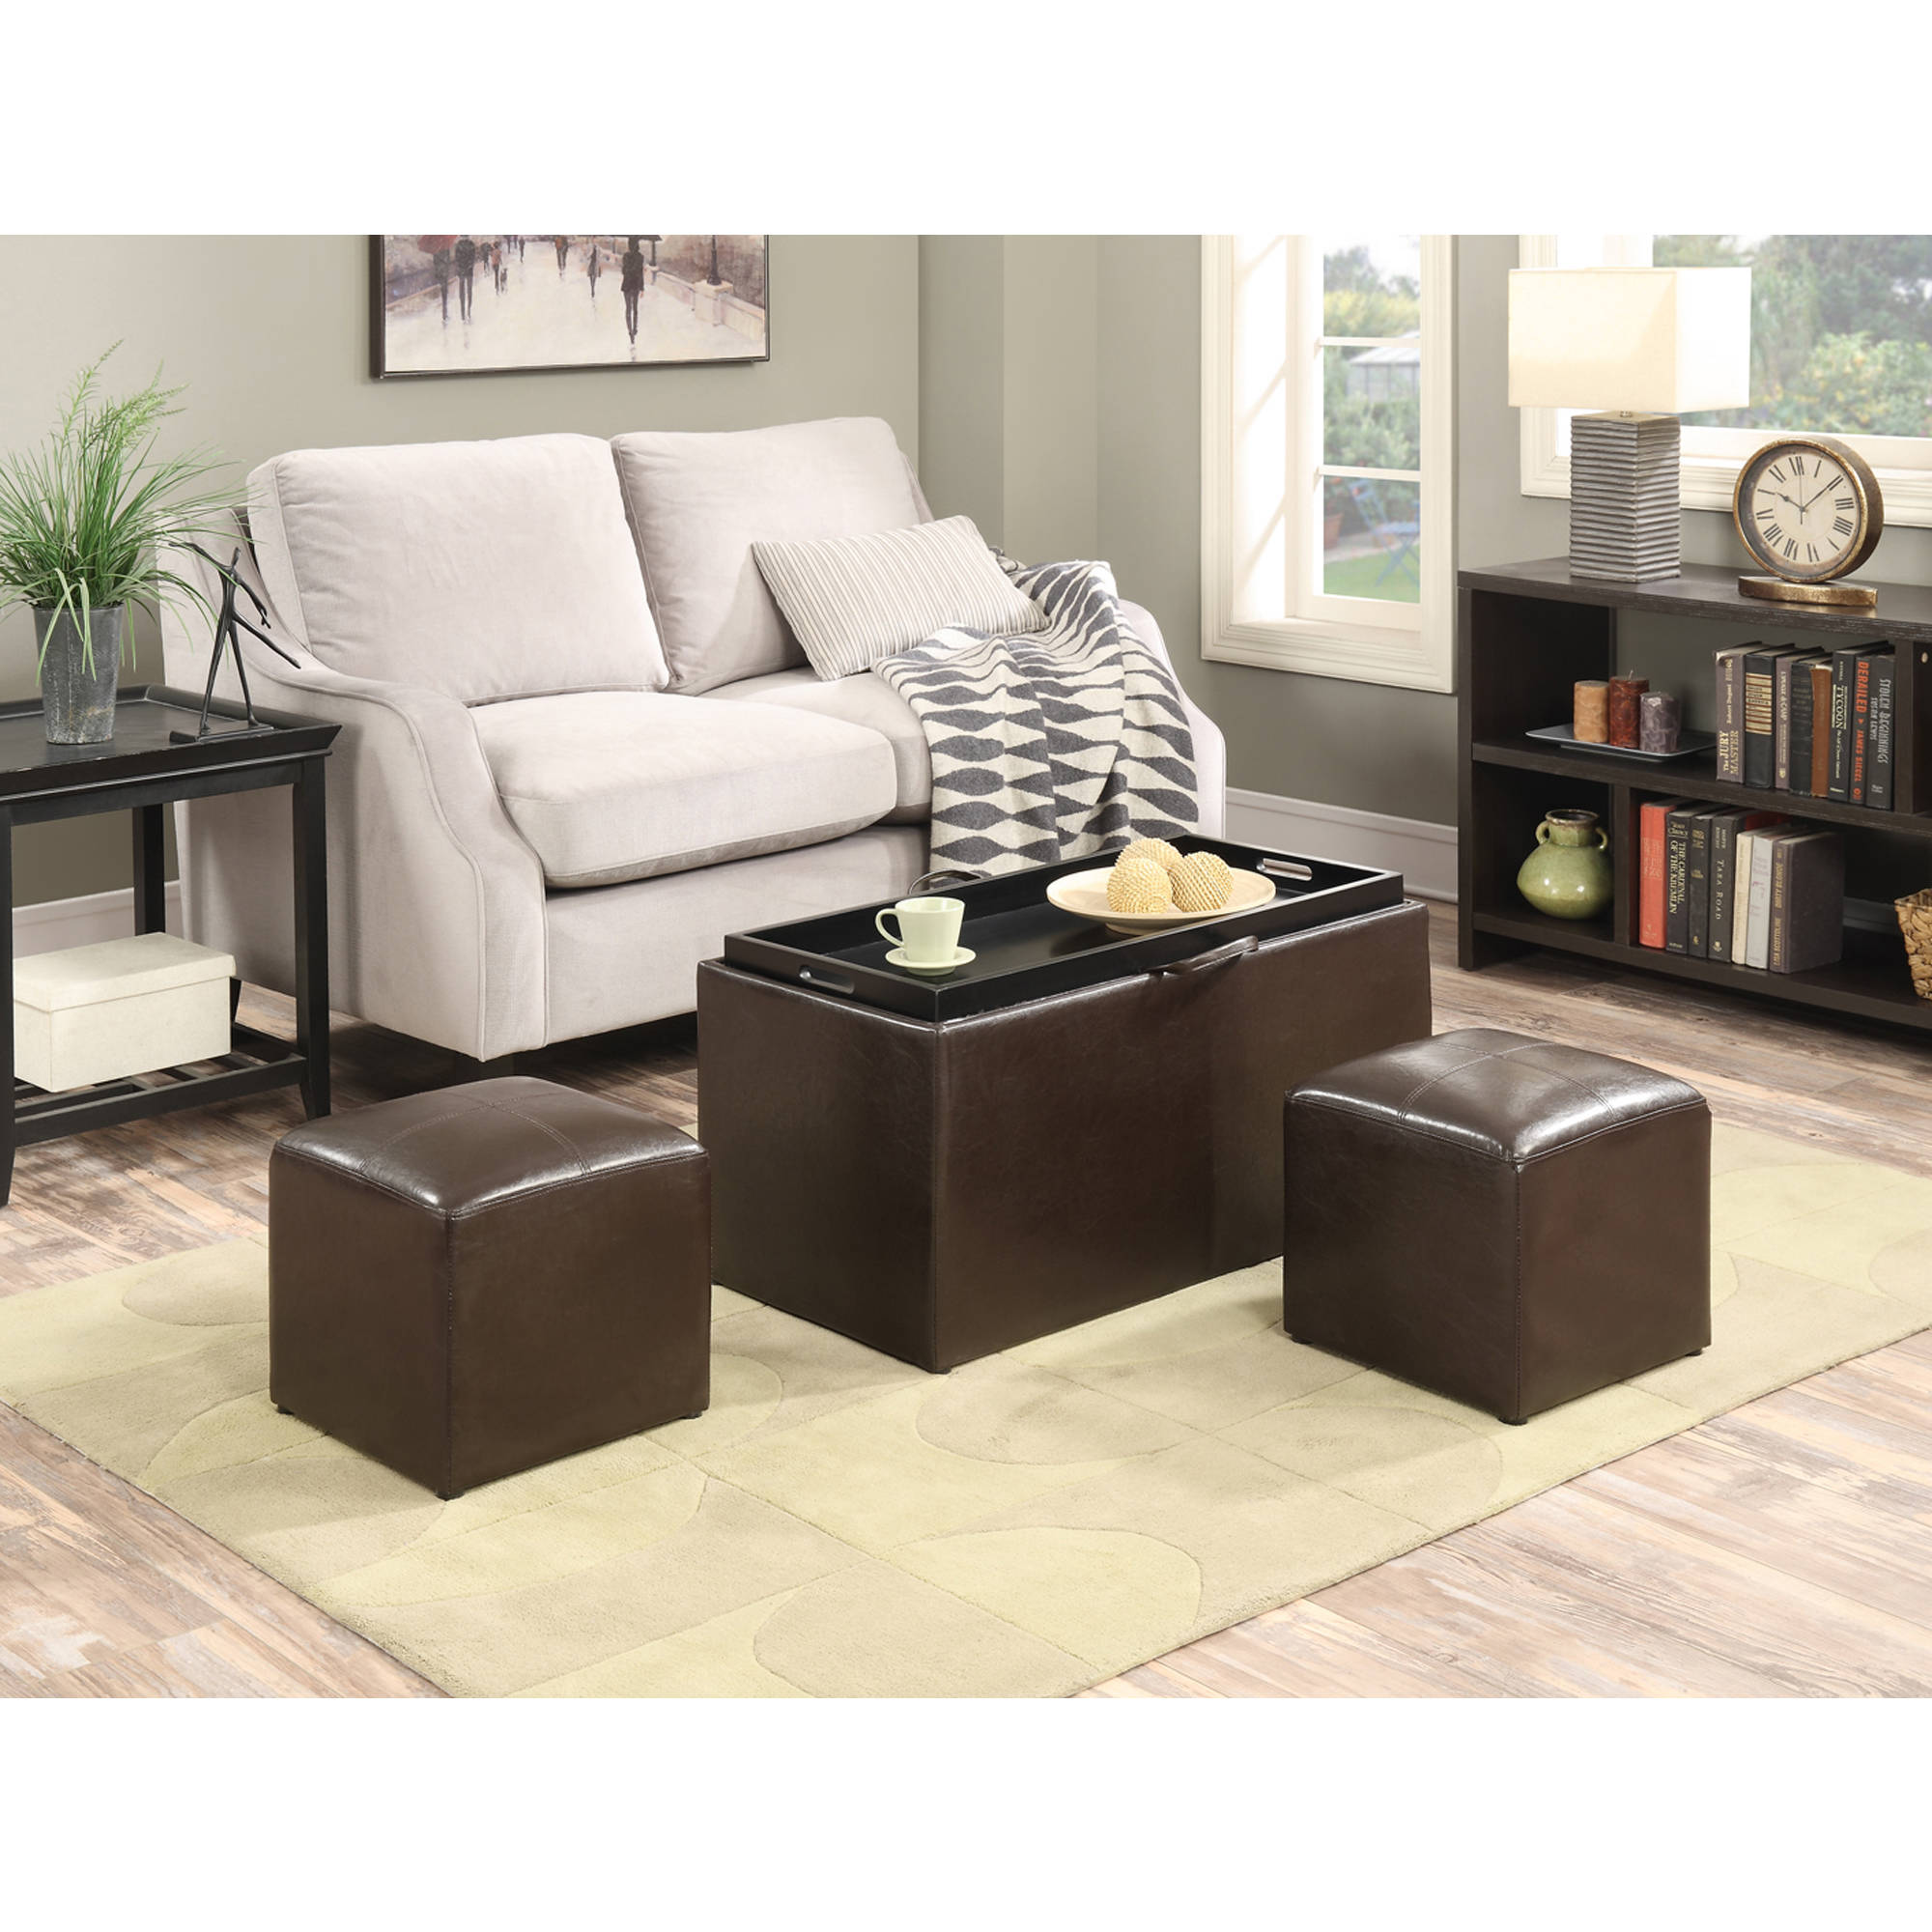 Designs4Comfort Faux Leather Storage Bench with 2 Side Ottomans, Multiple Colors